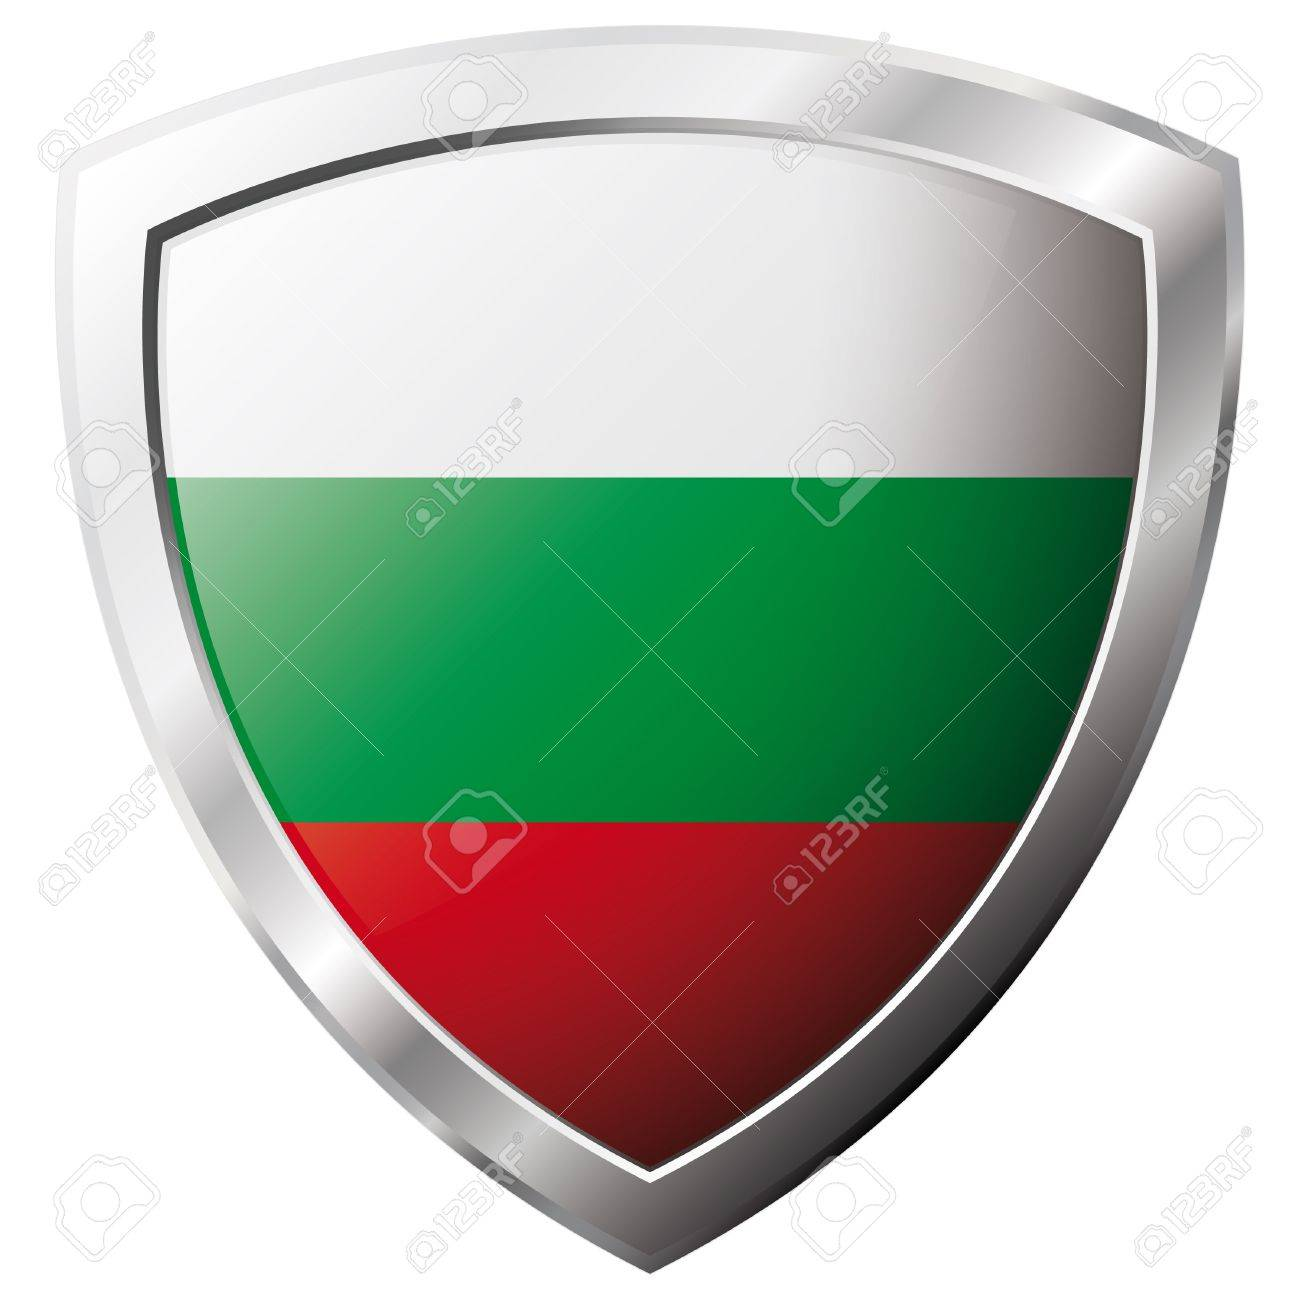 Bulgaria flag on metal shiny shield vector illustration. Collection of flags on shield against white background. Abstract isolated object. Stock Vector - 6905915